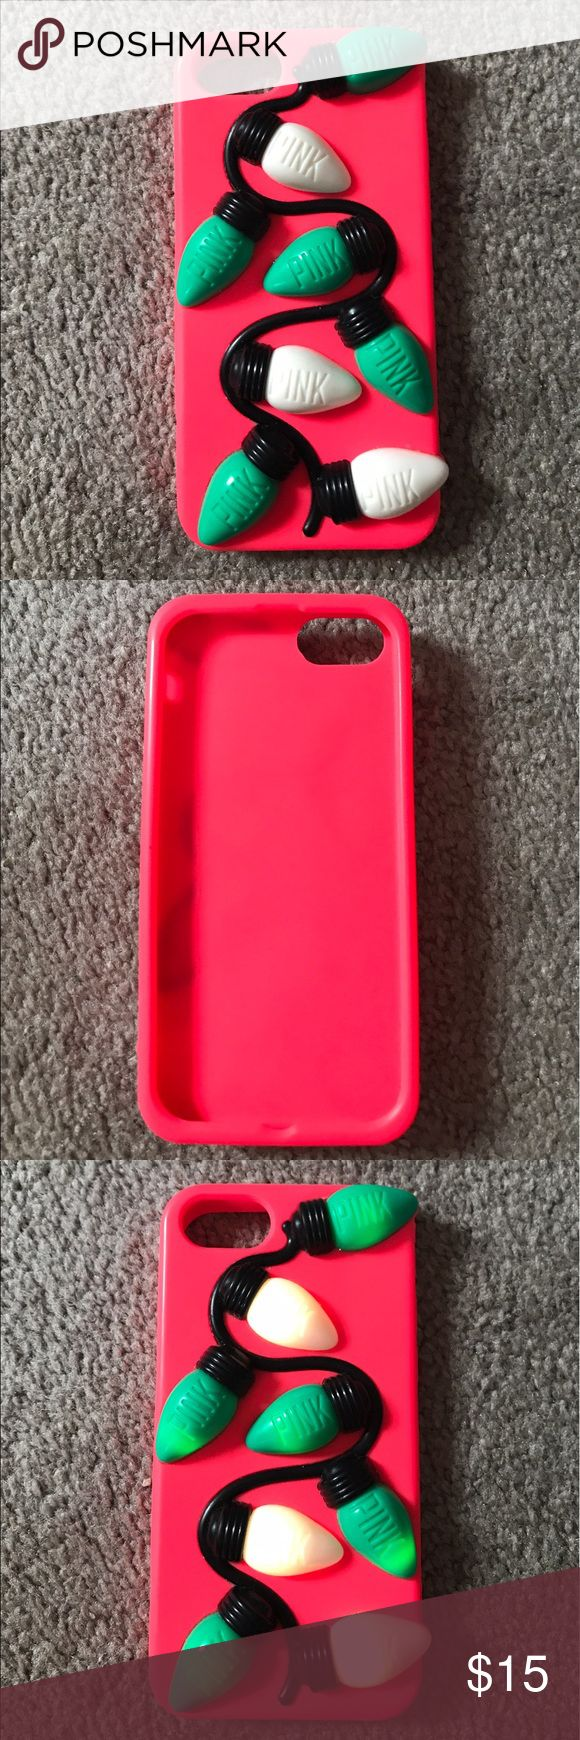 PINK Phone Case Great condition only used on Christmas Eve